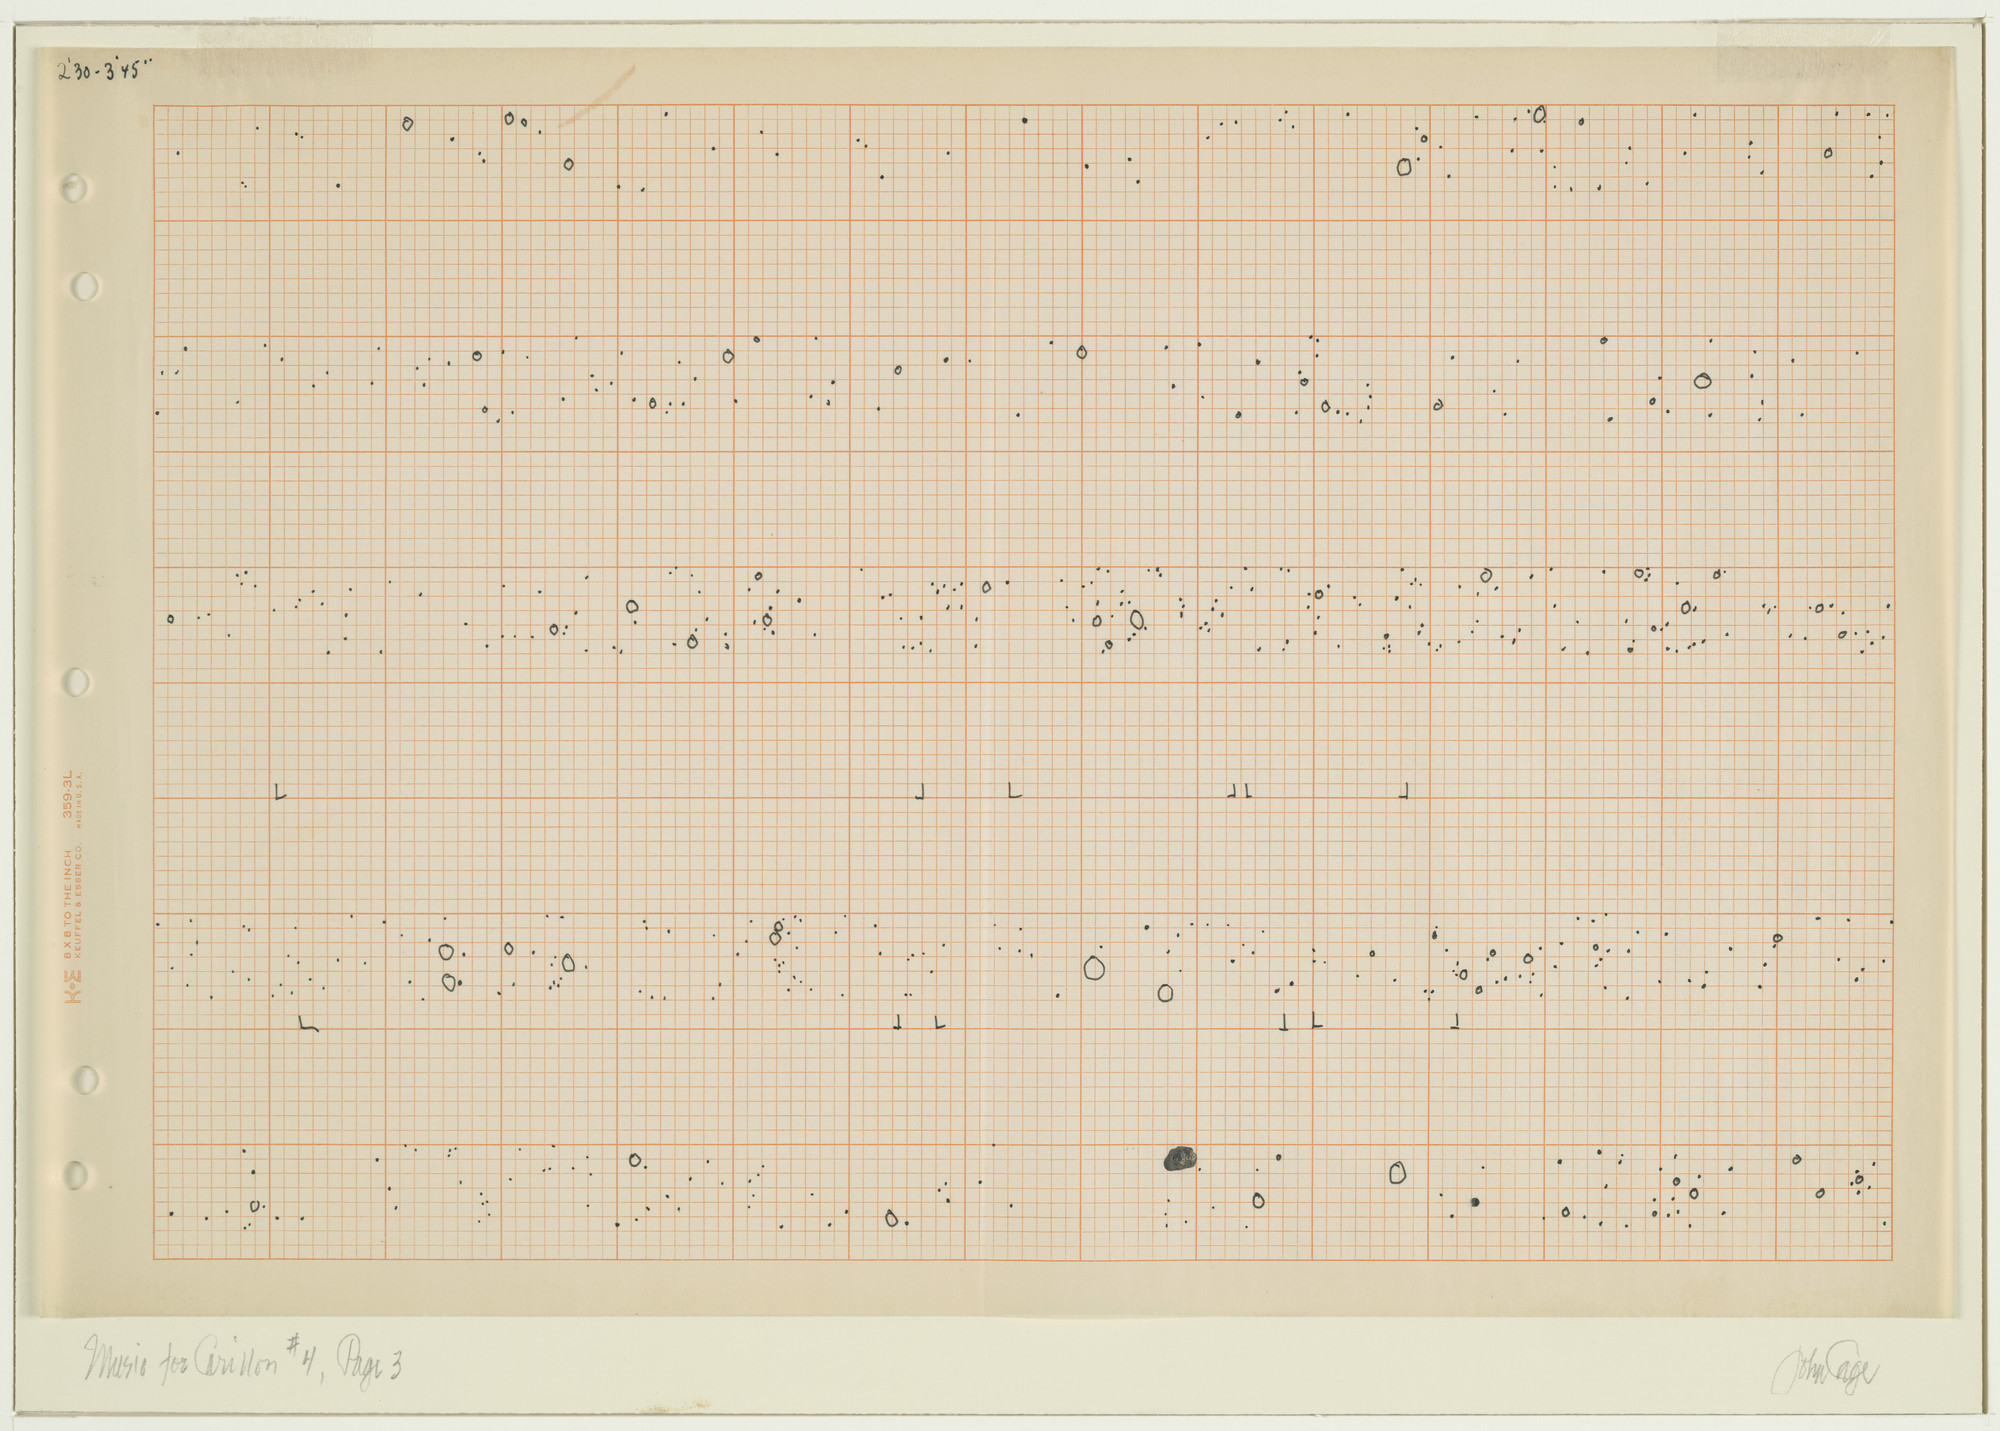 John Cage. Music for Carillon, # 4, Page 3. 1961